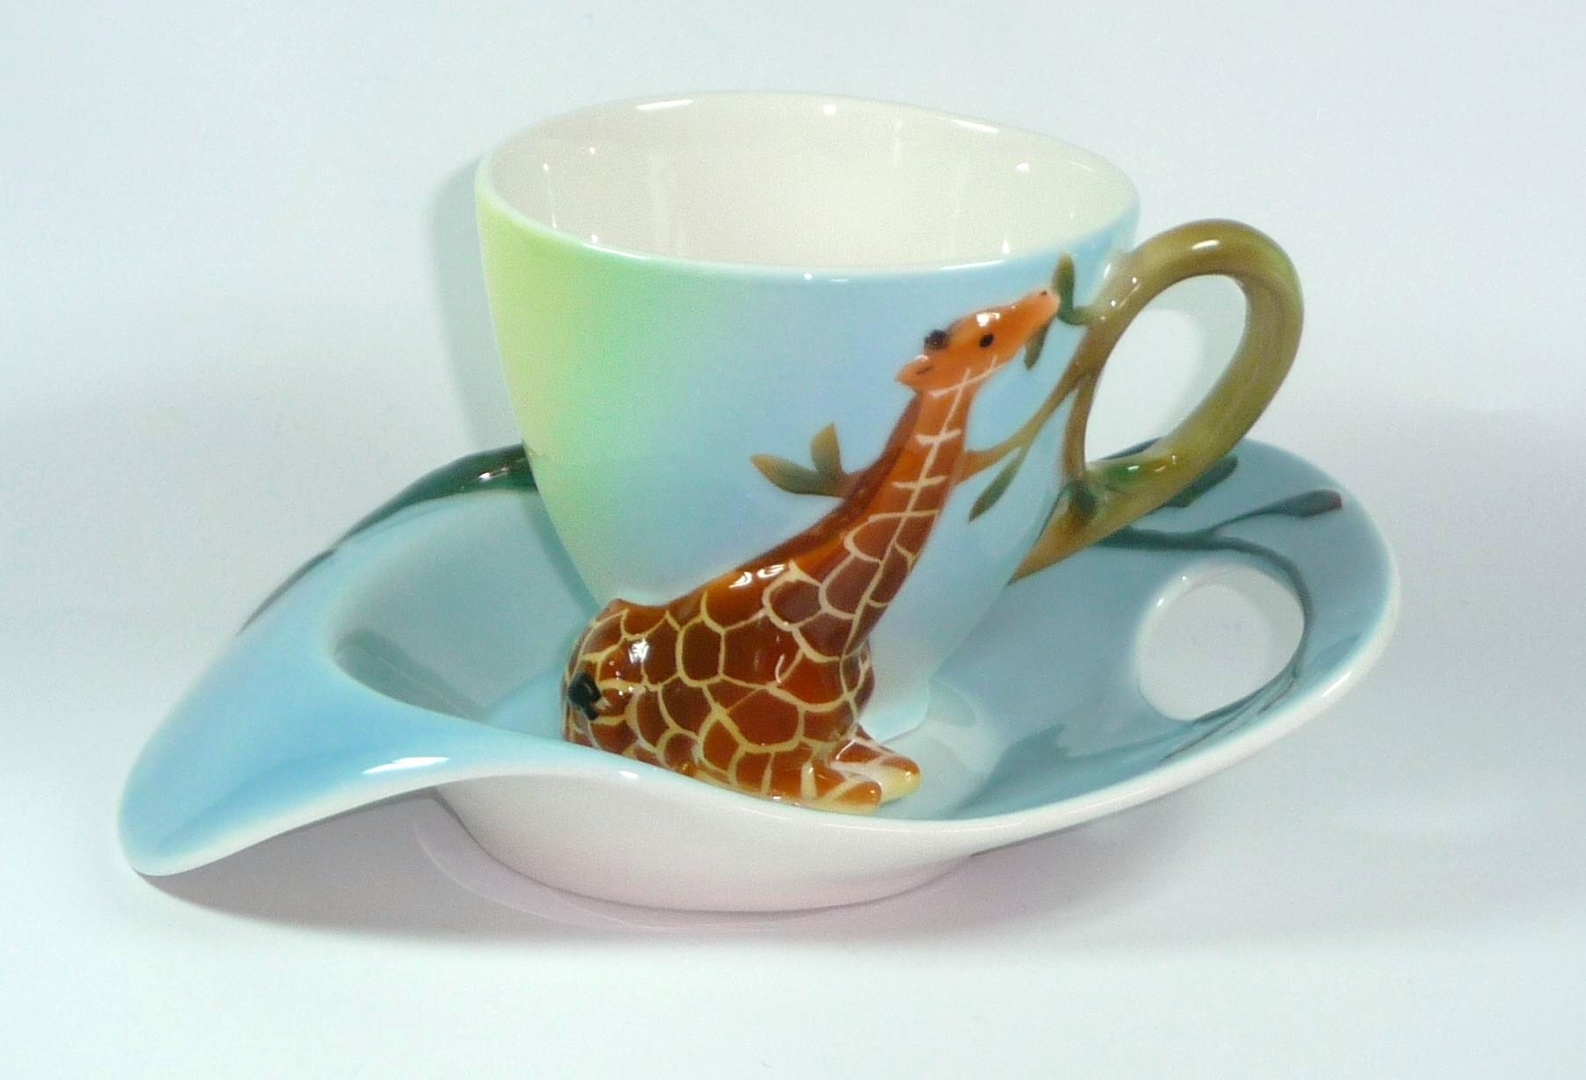 tasse mit untertasse 1253 manufaktur pozellan giraffe. Black Bedroom Furniture Sets. Home Design Ideas